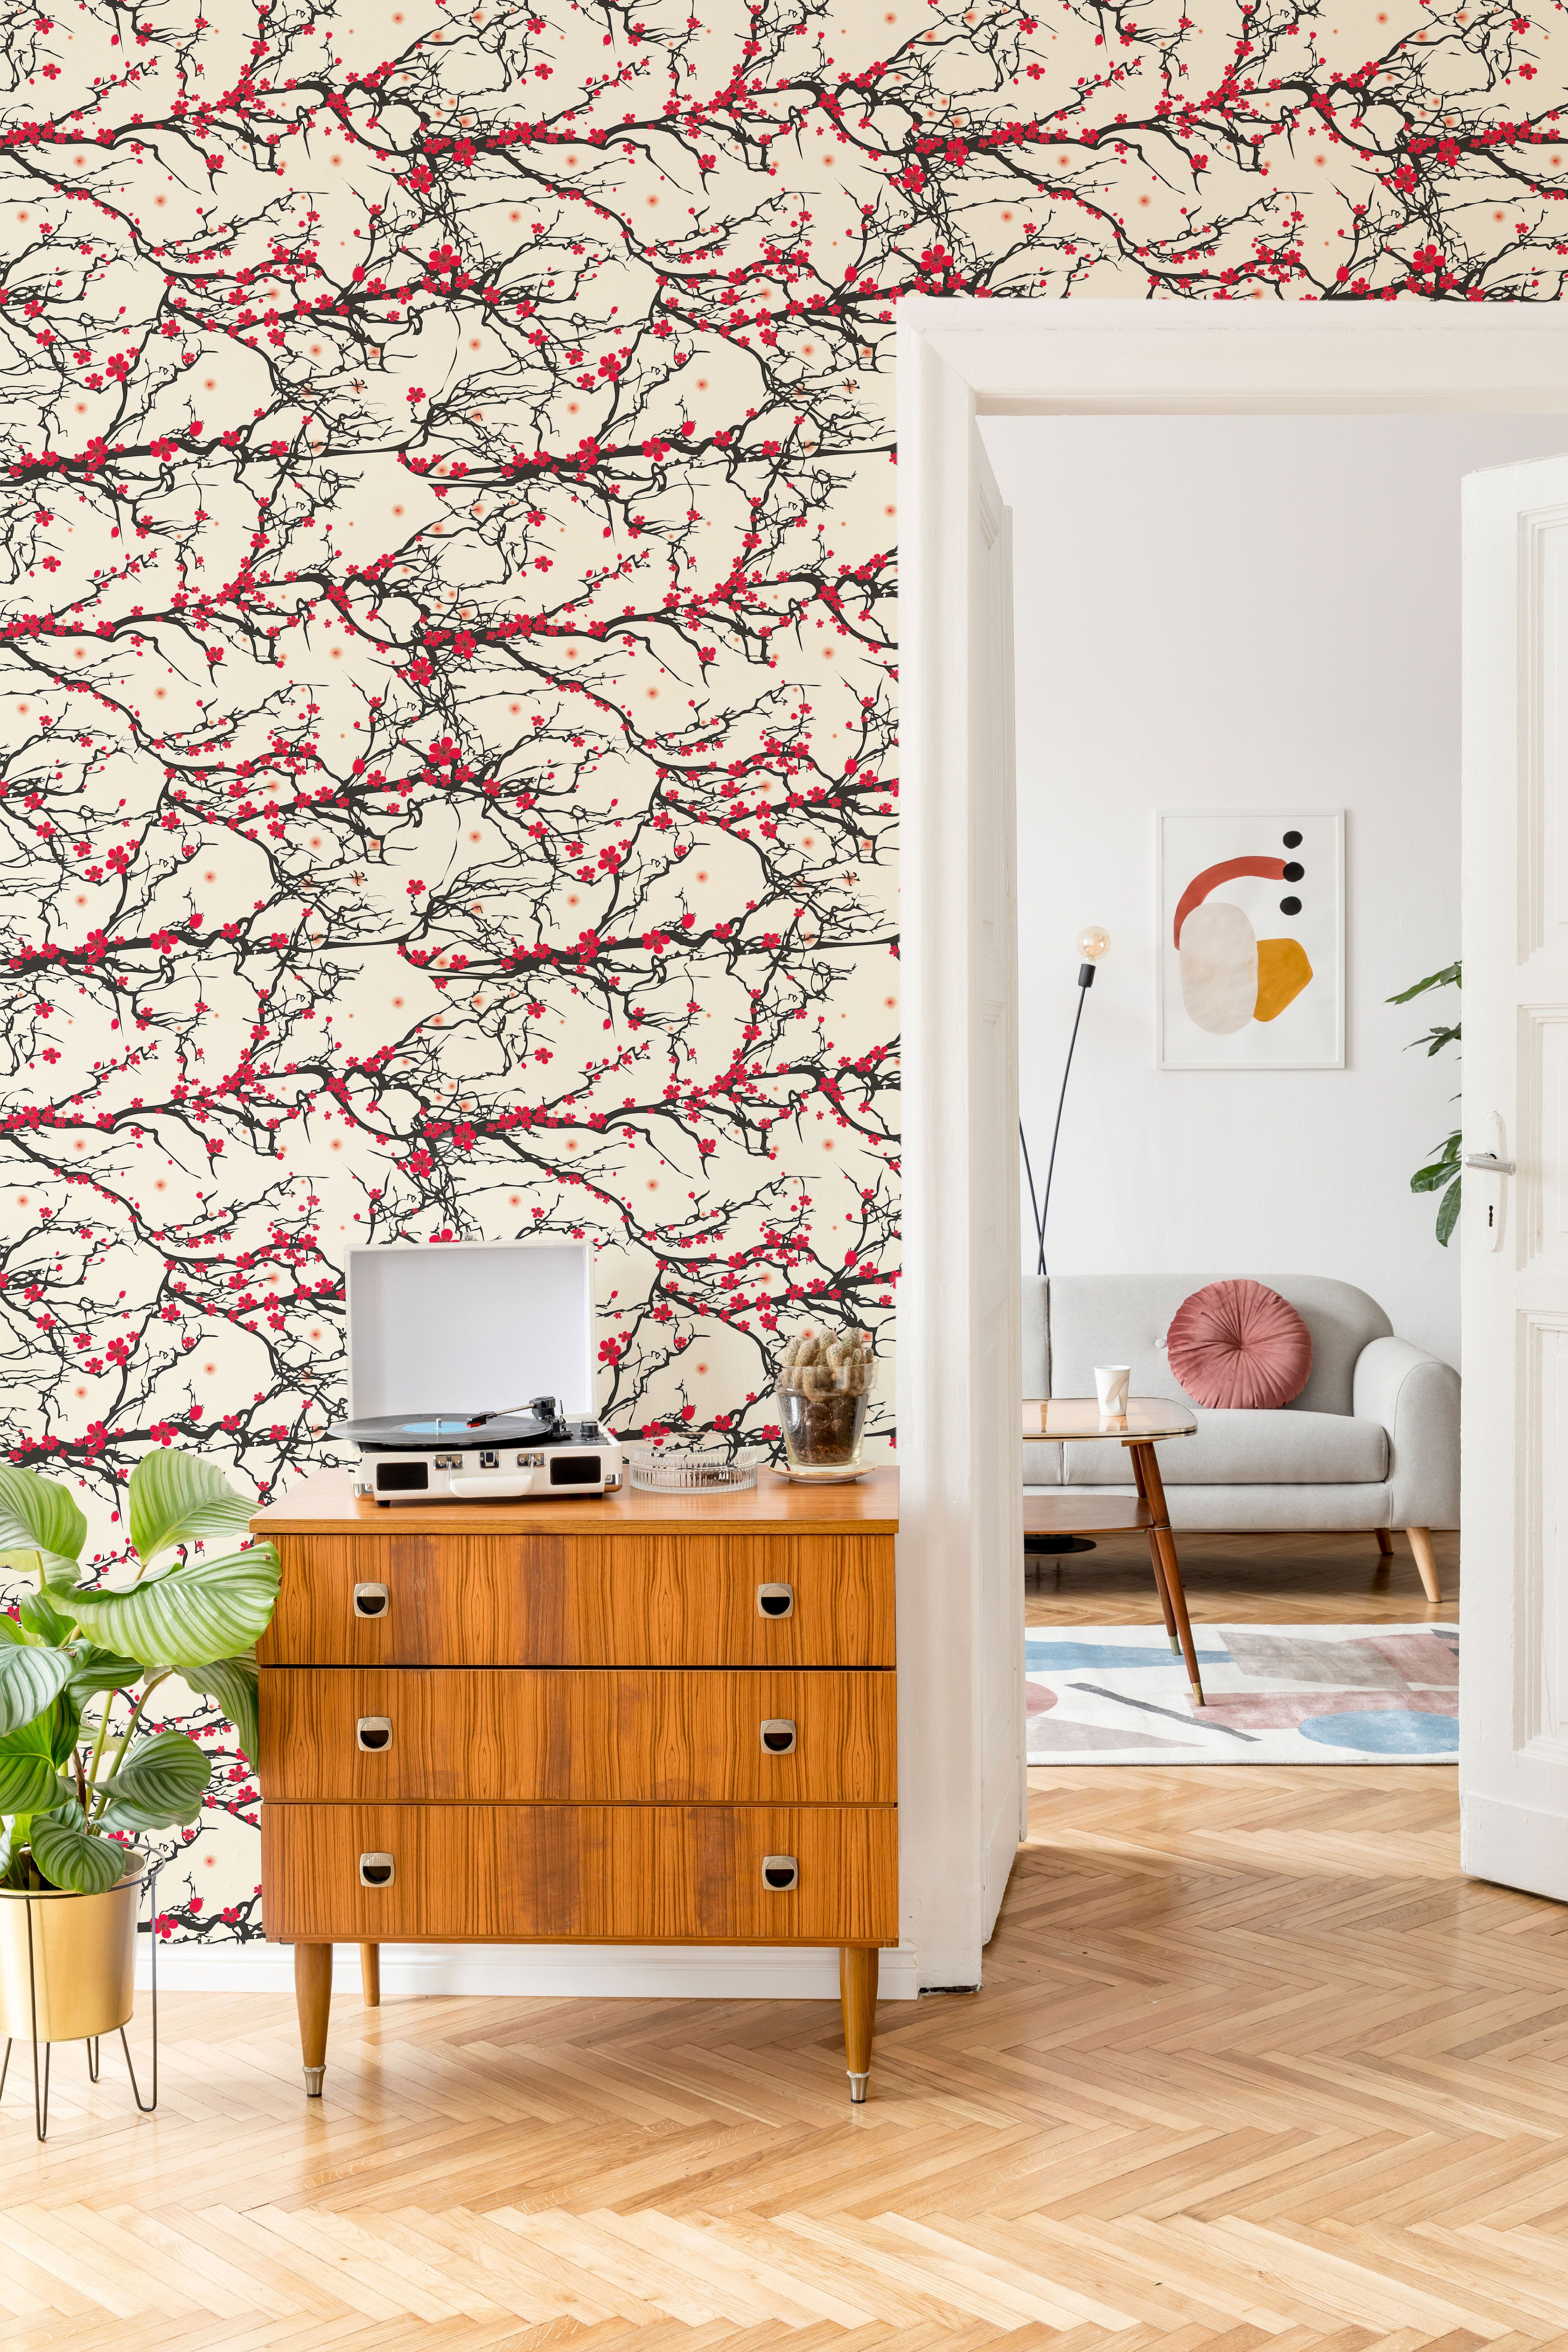 Black and Red Japanese Floral Fabric Removable Wallpaper